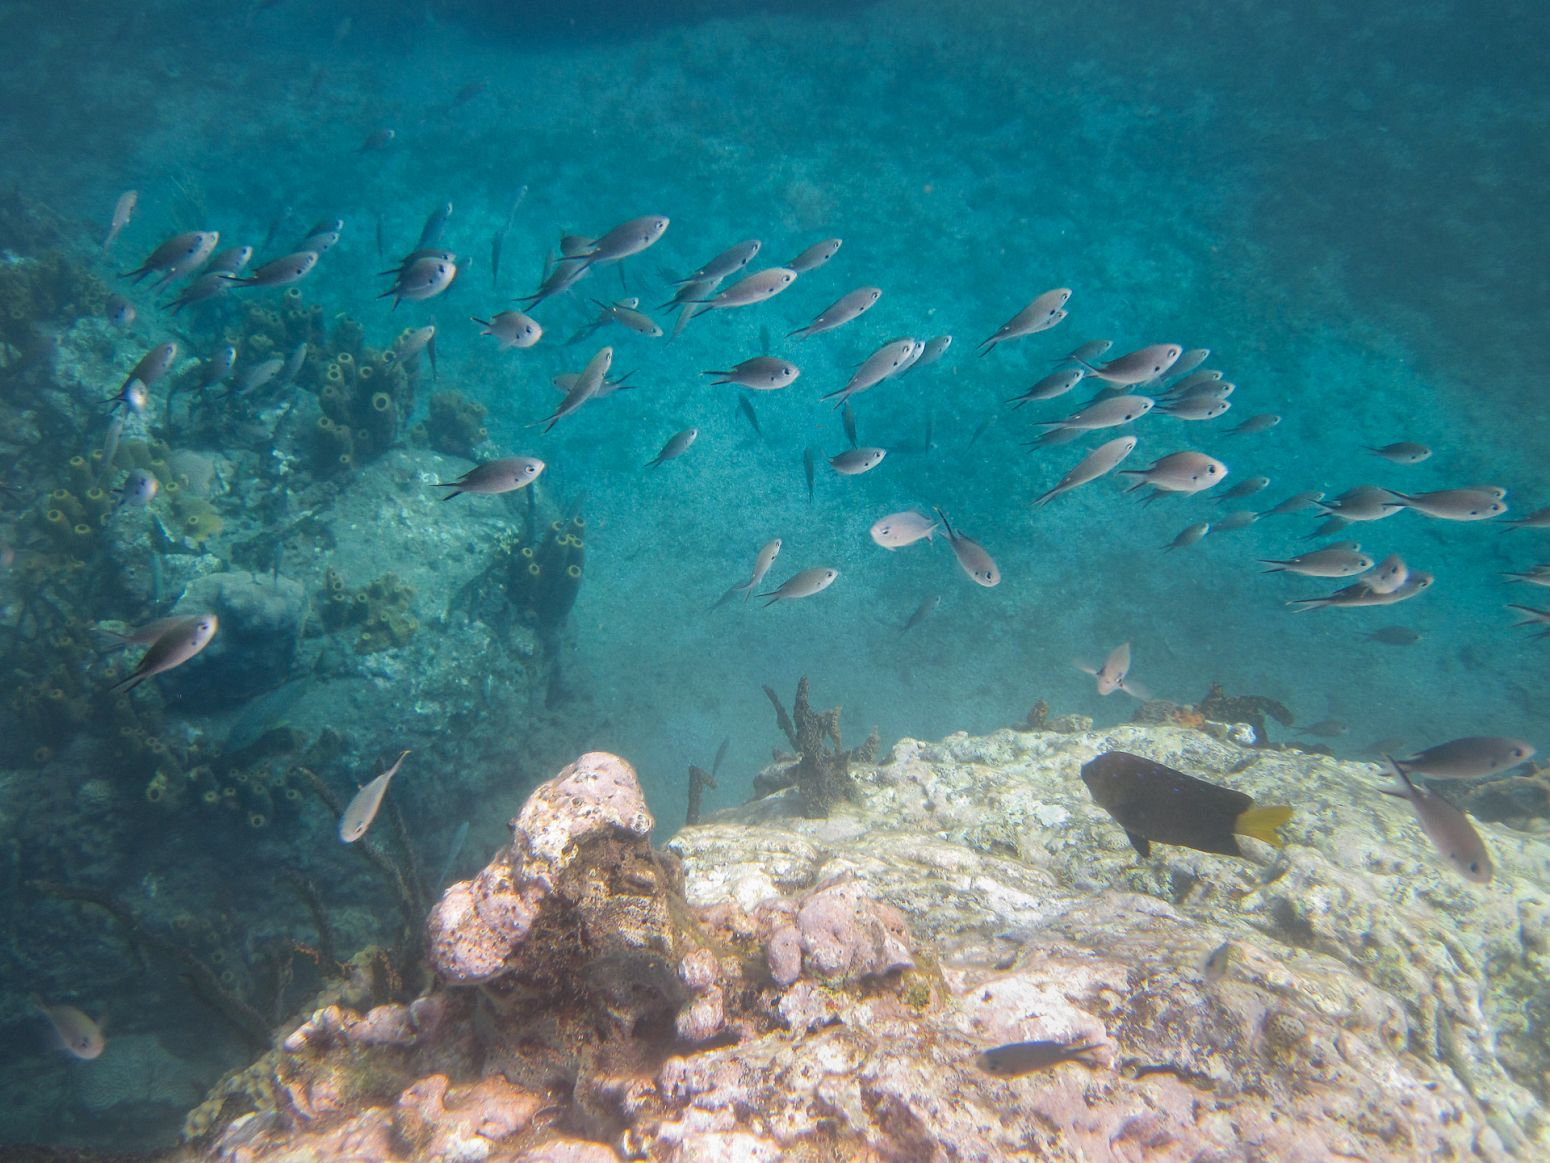 Snorkeling near Jacques Cousteau's Underwater Reserve, Guadeloupe.